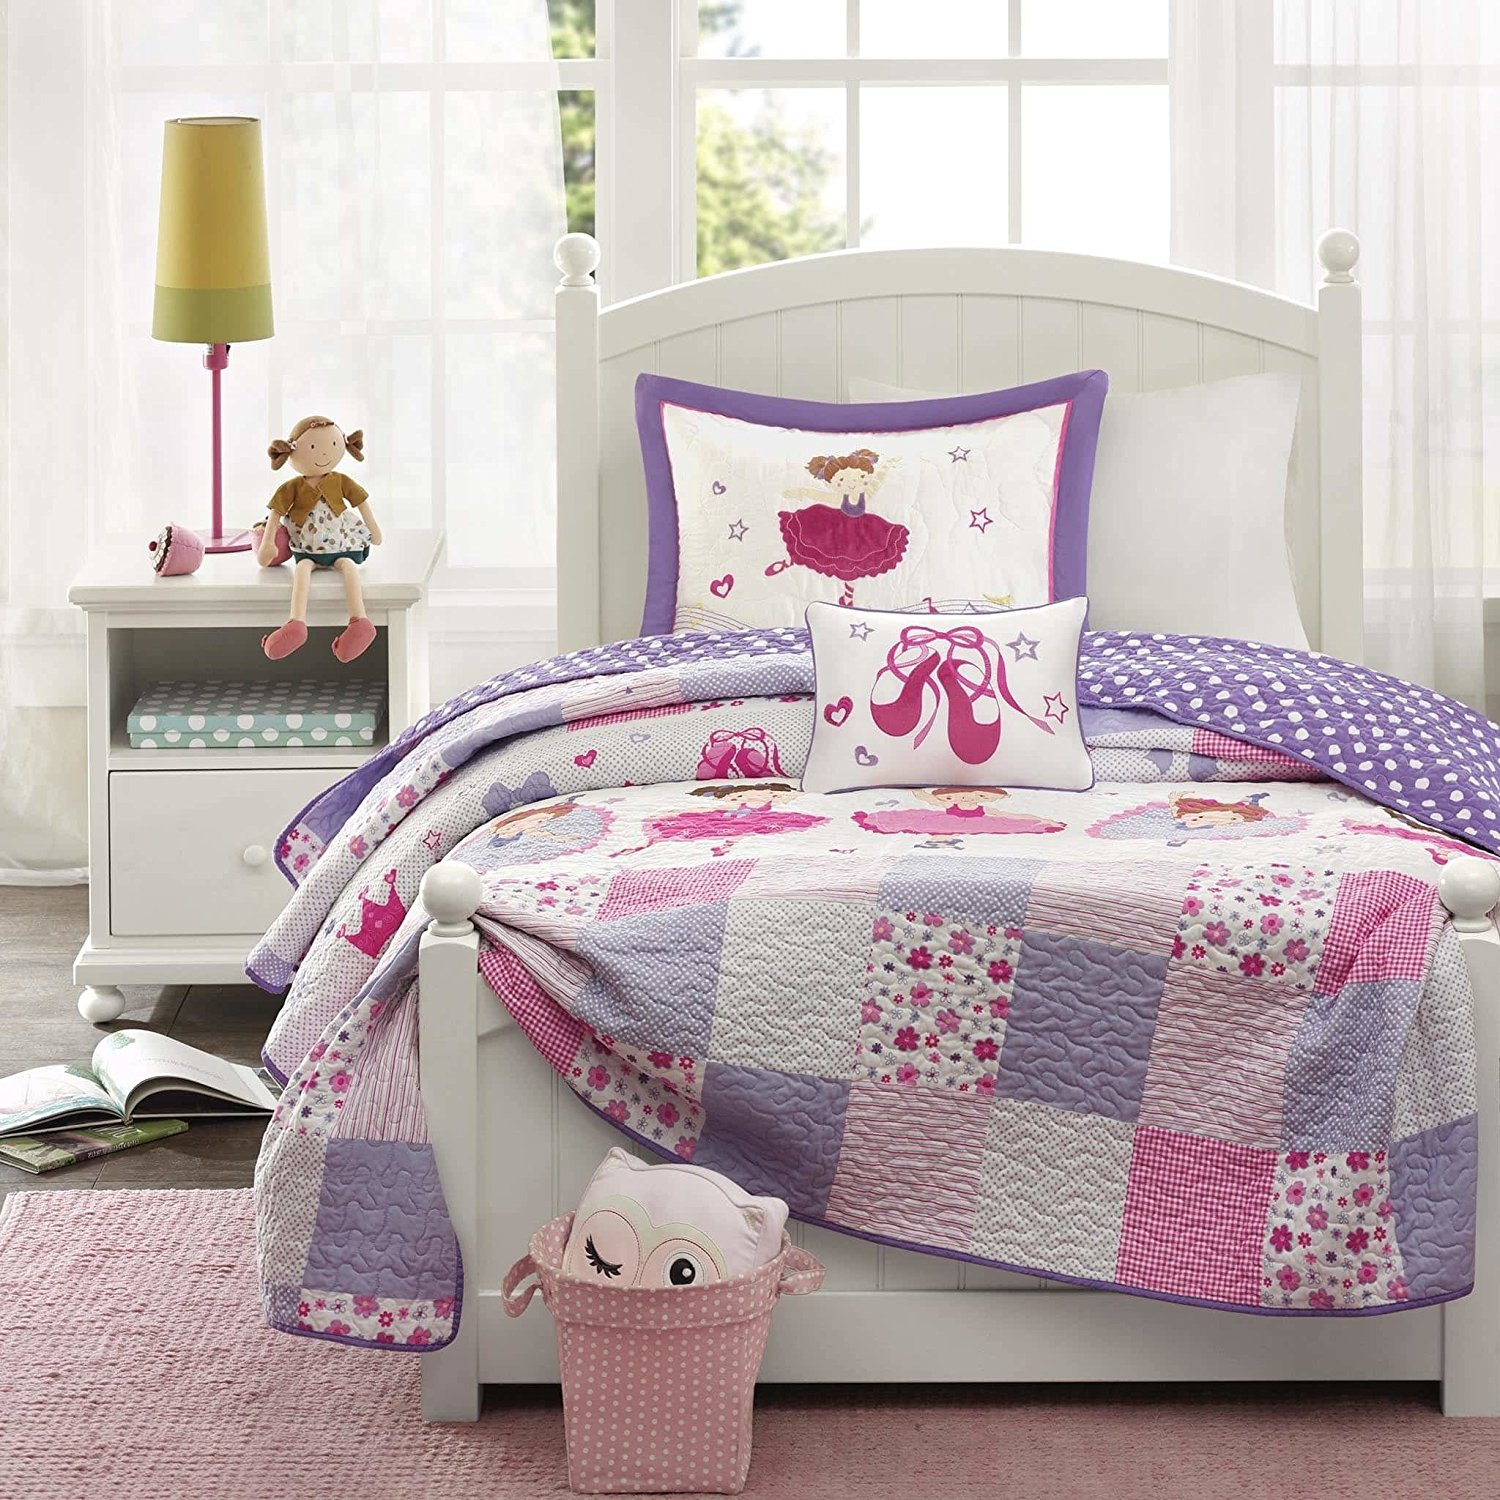 UK4 4 Piece Kids Pink Patchwork Full Queen Coverlet Set, Purple Grey Squared Checkered Theme Bedding Rugby Stripe Plaid Cute Floral Flowers Reversible Ballet Dancers, Polyester